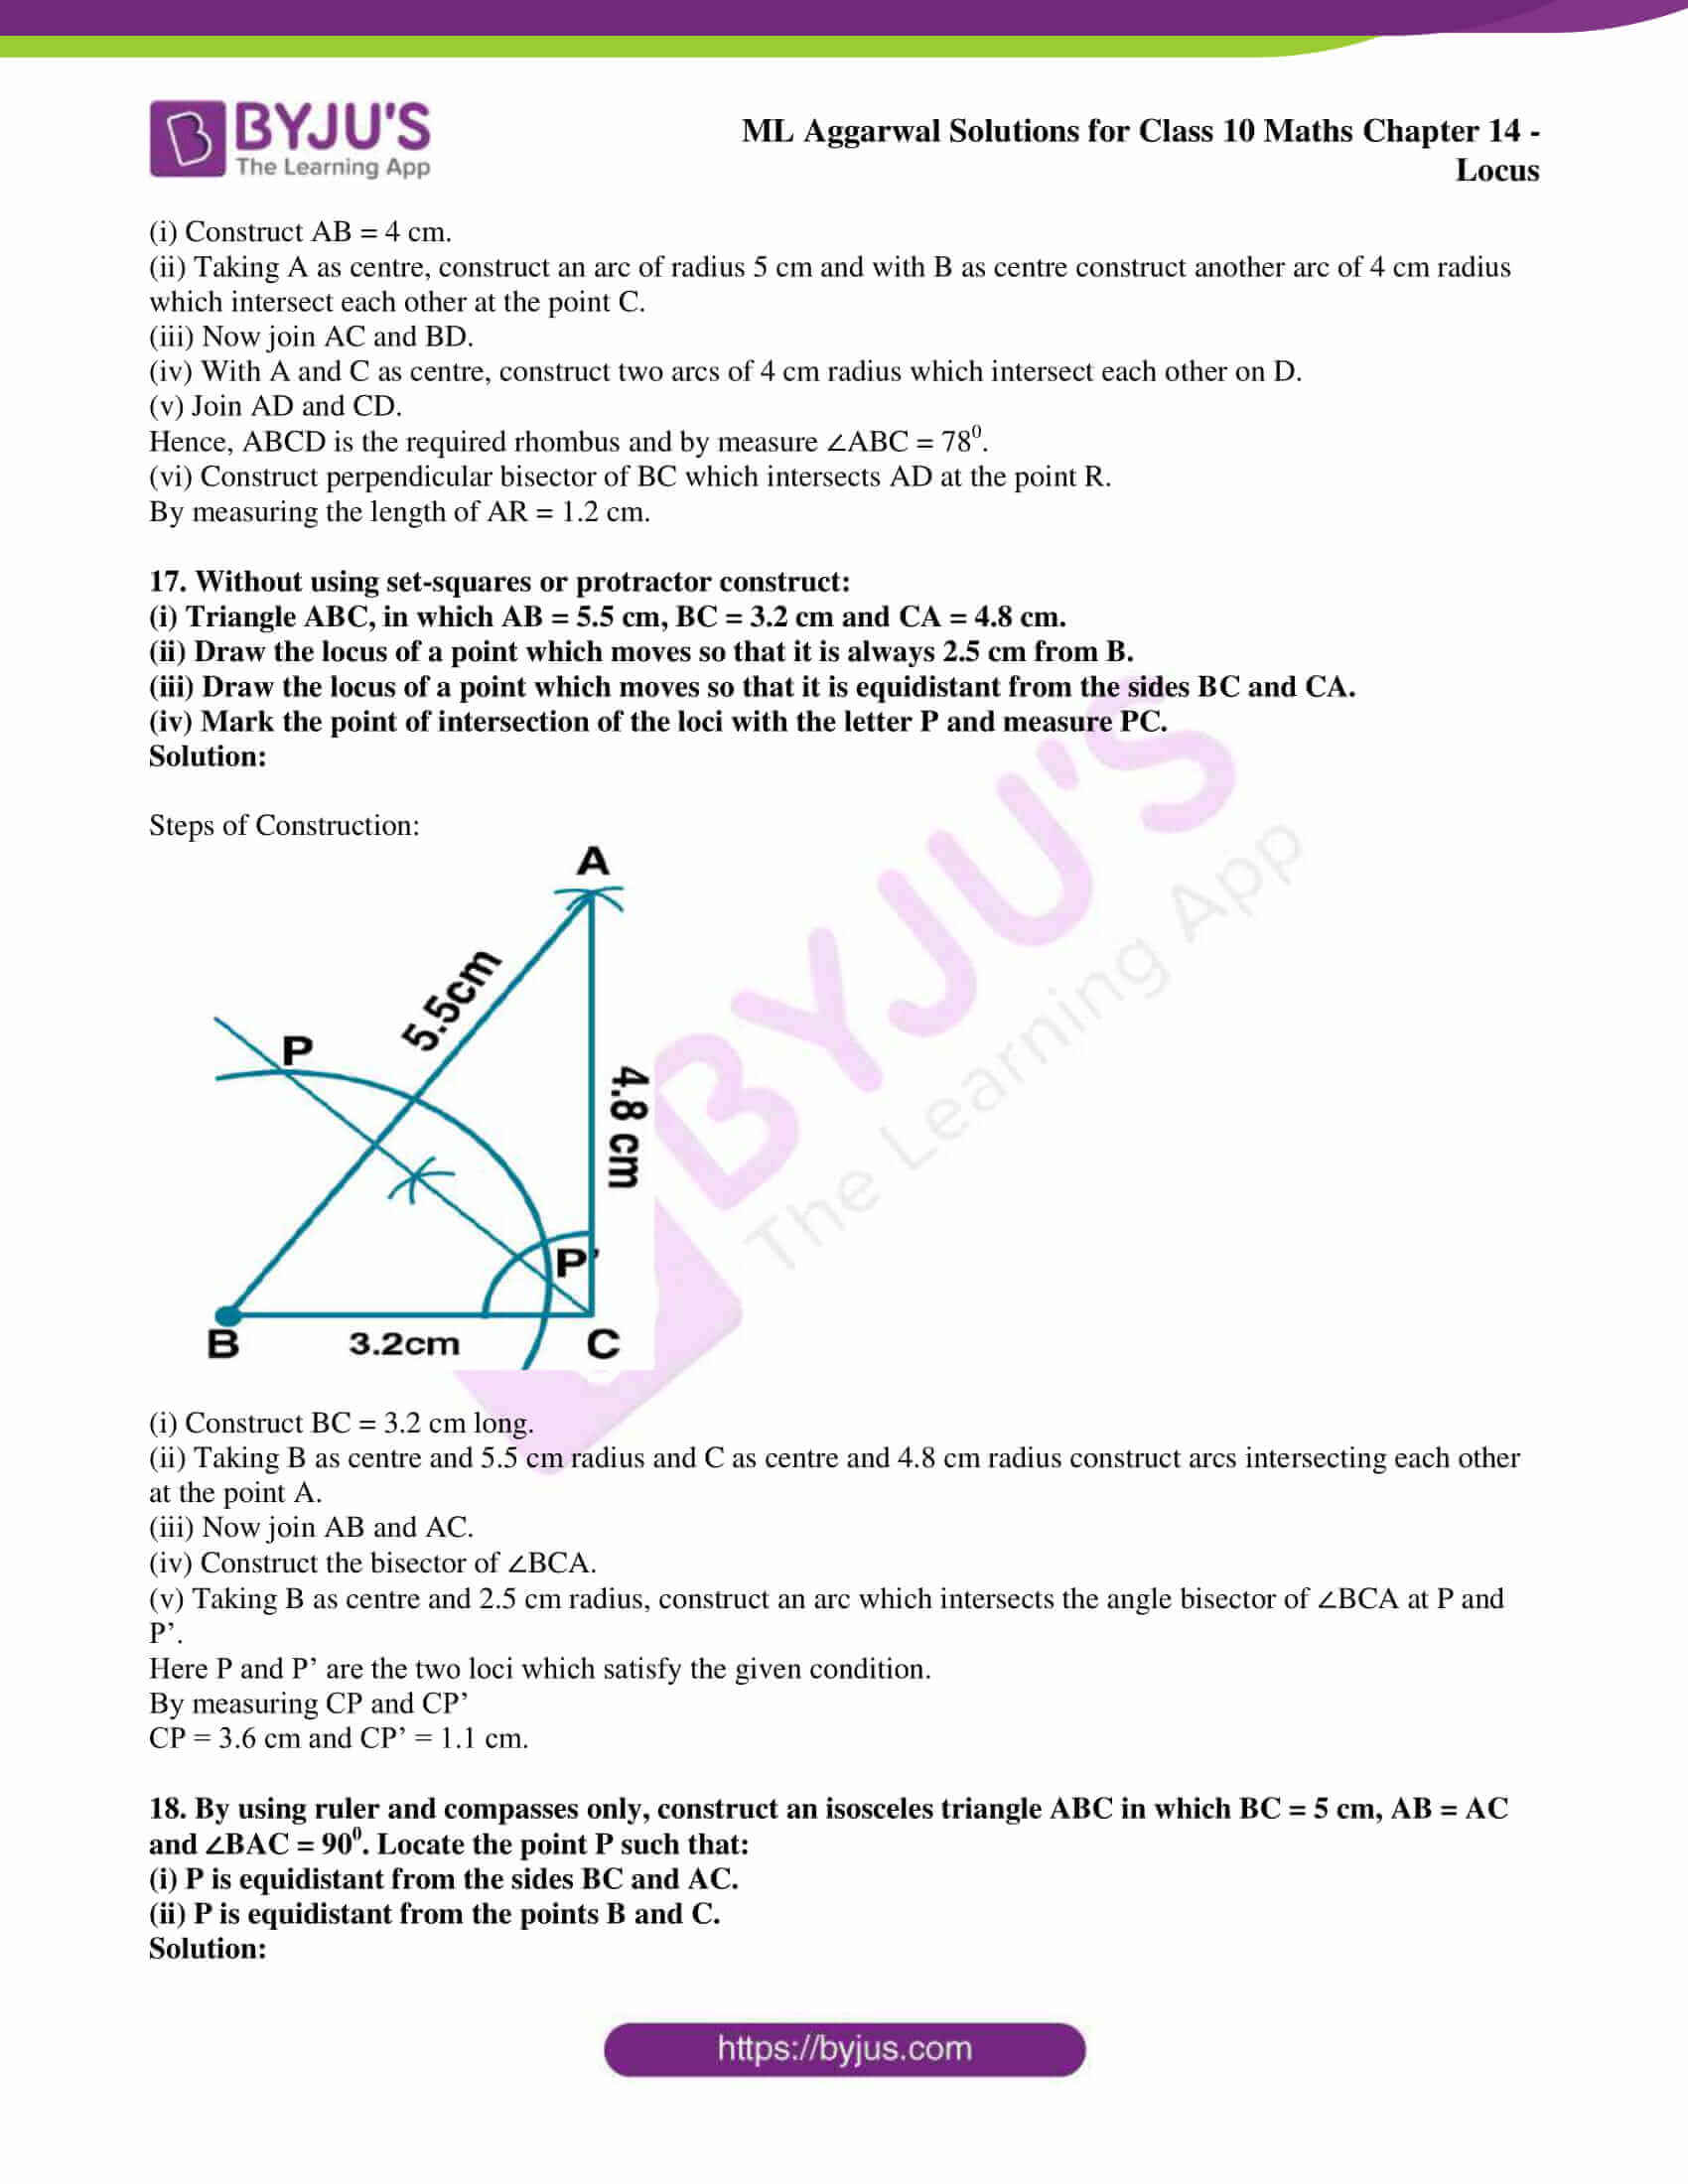 ml aggarwal solutions for class 10 maths chapter 14 15